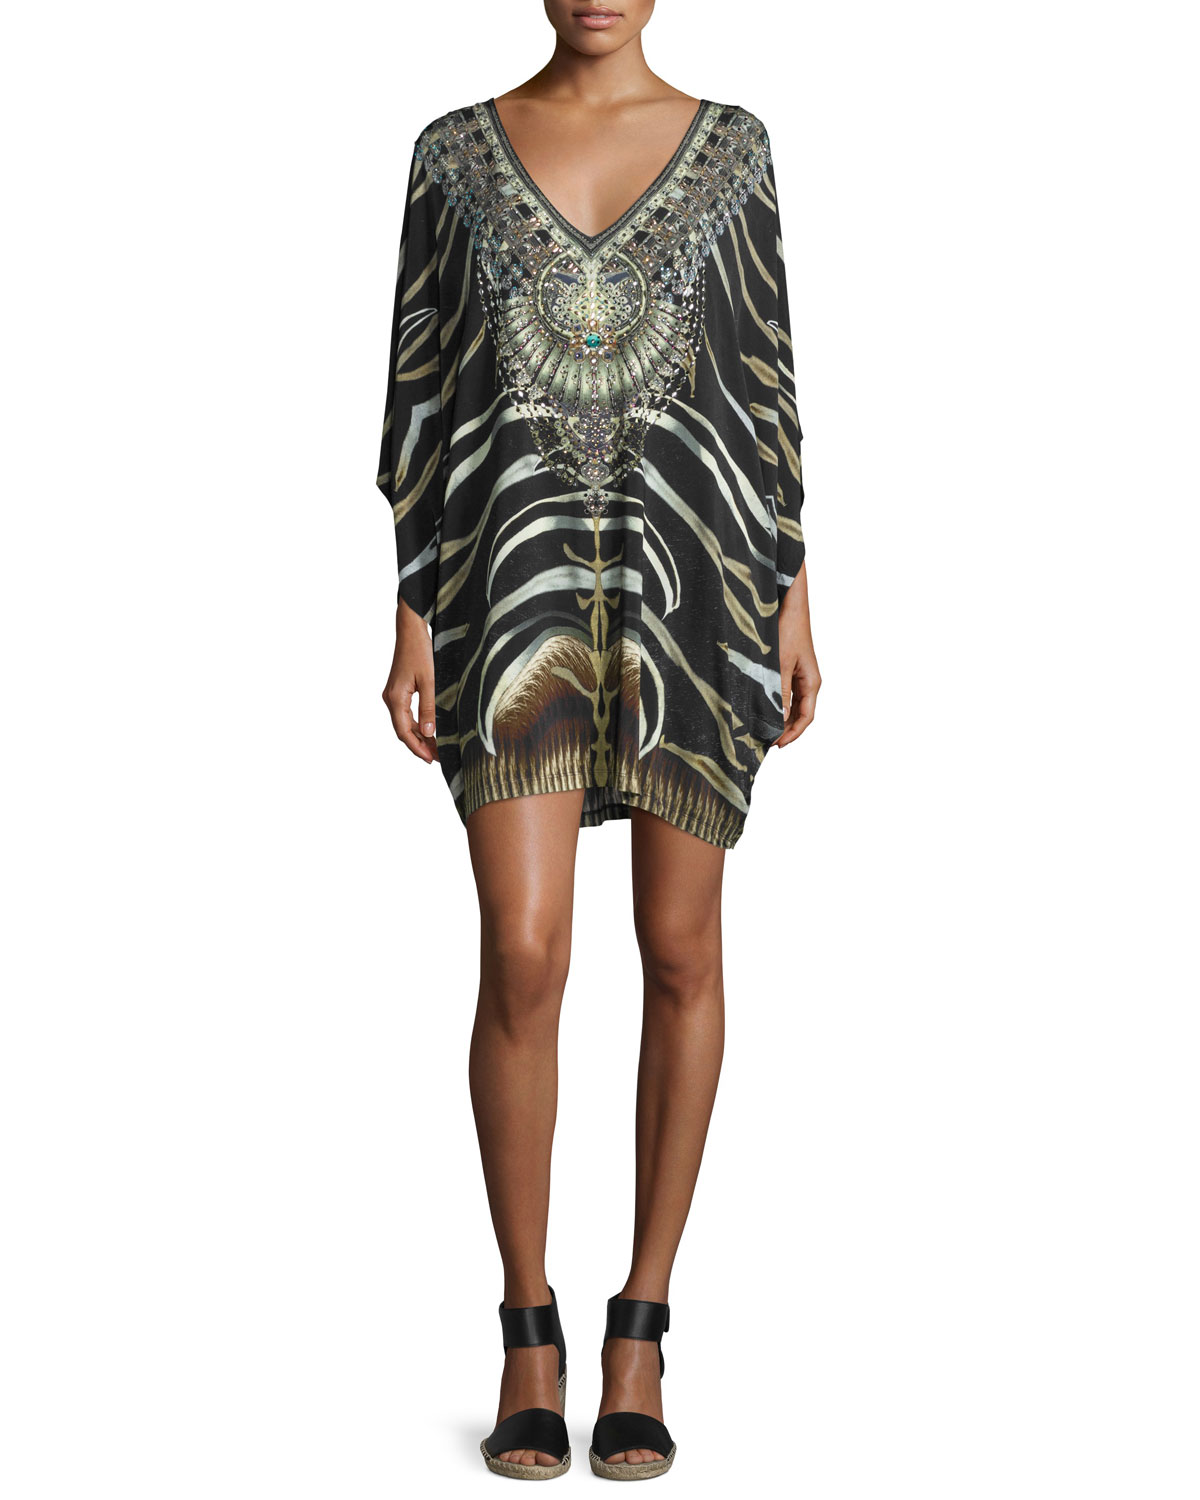 Embellished Batwing-Sleeve Dress, Zebra Crossing